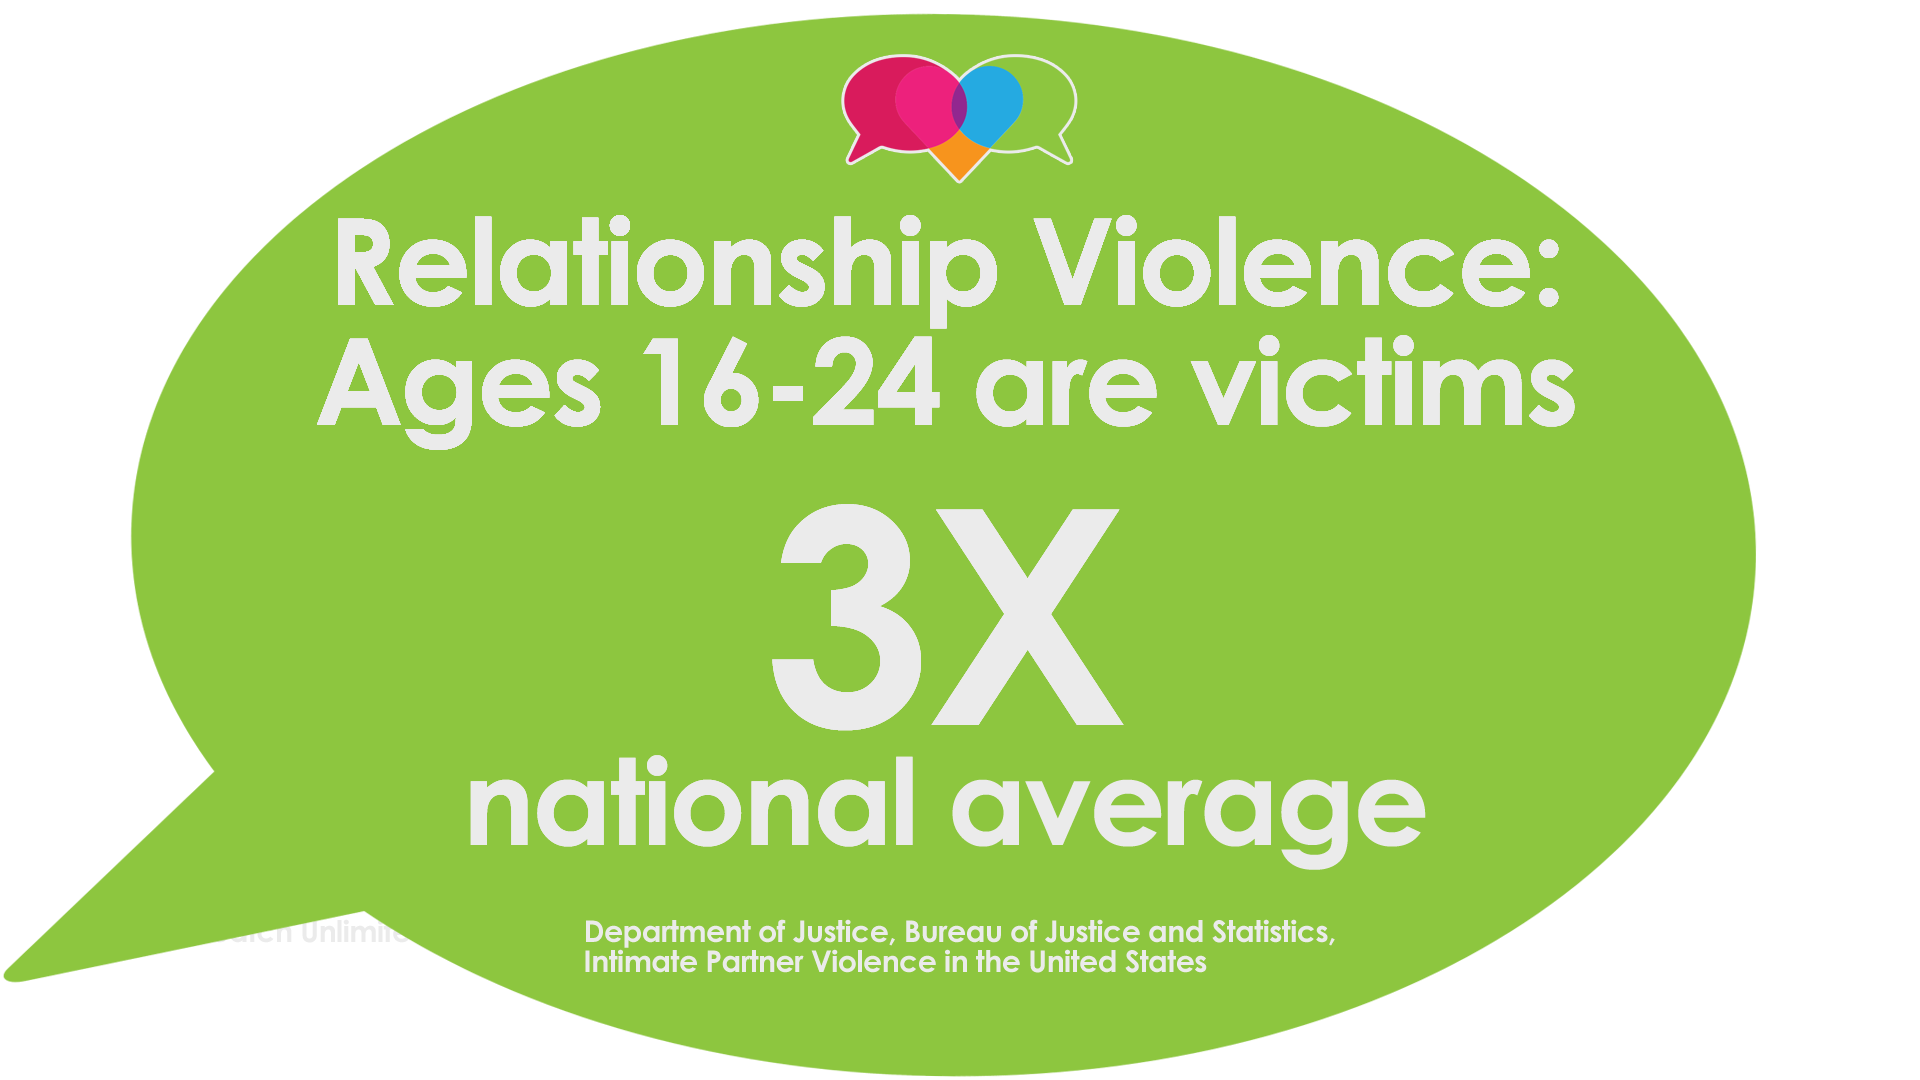 Relationship Violence: Ages 16-24 are victims three times the national average.